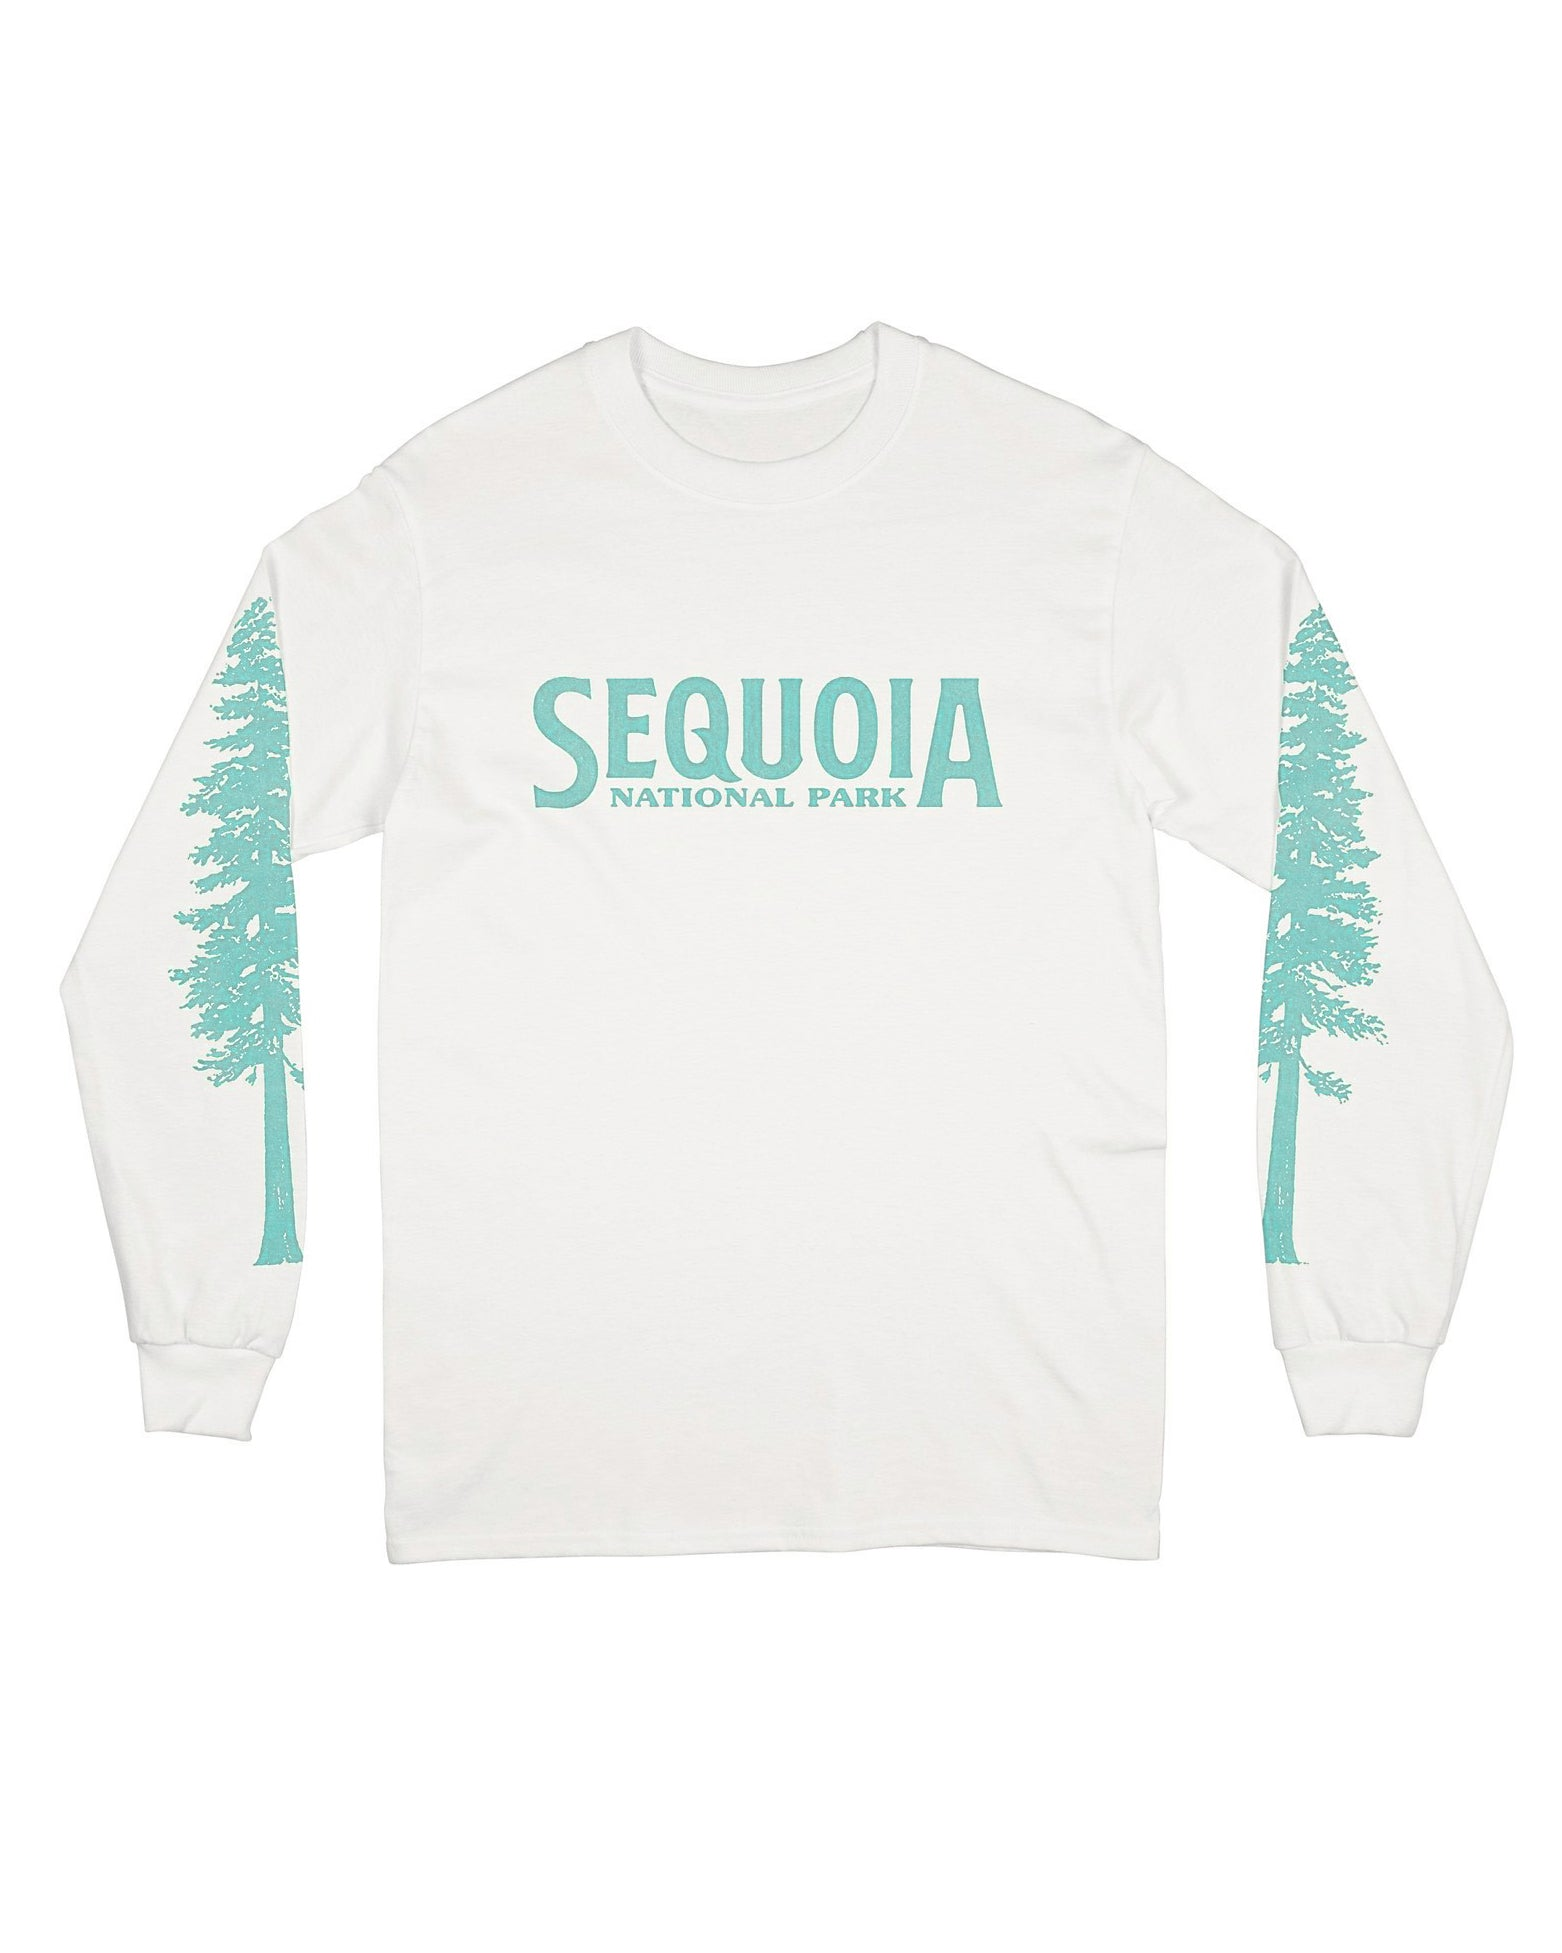 Sequoia Big One Long Sleeve Tee | Parks Project | Wilderness Clothing